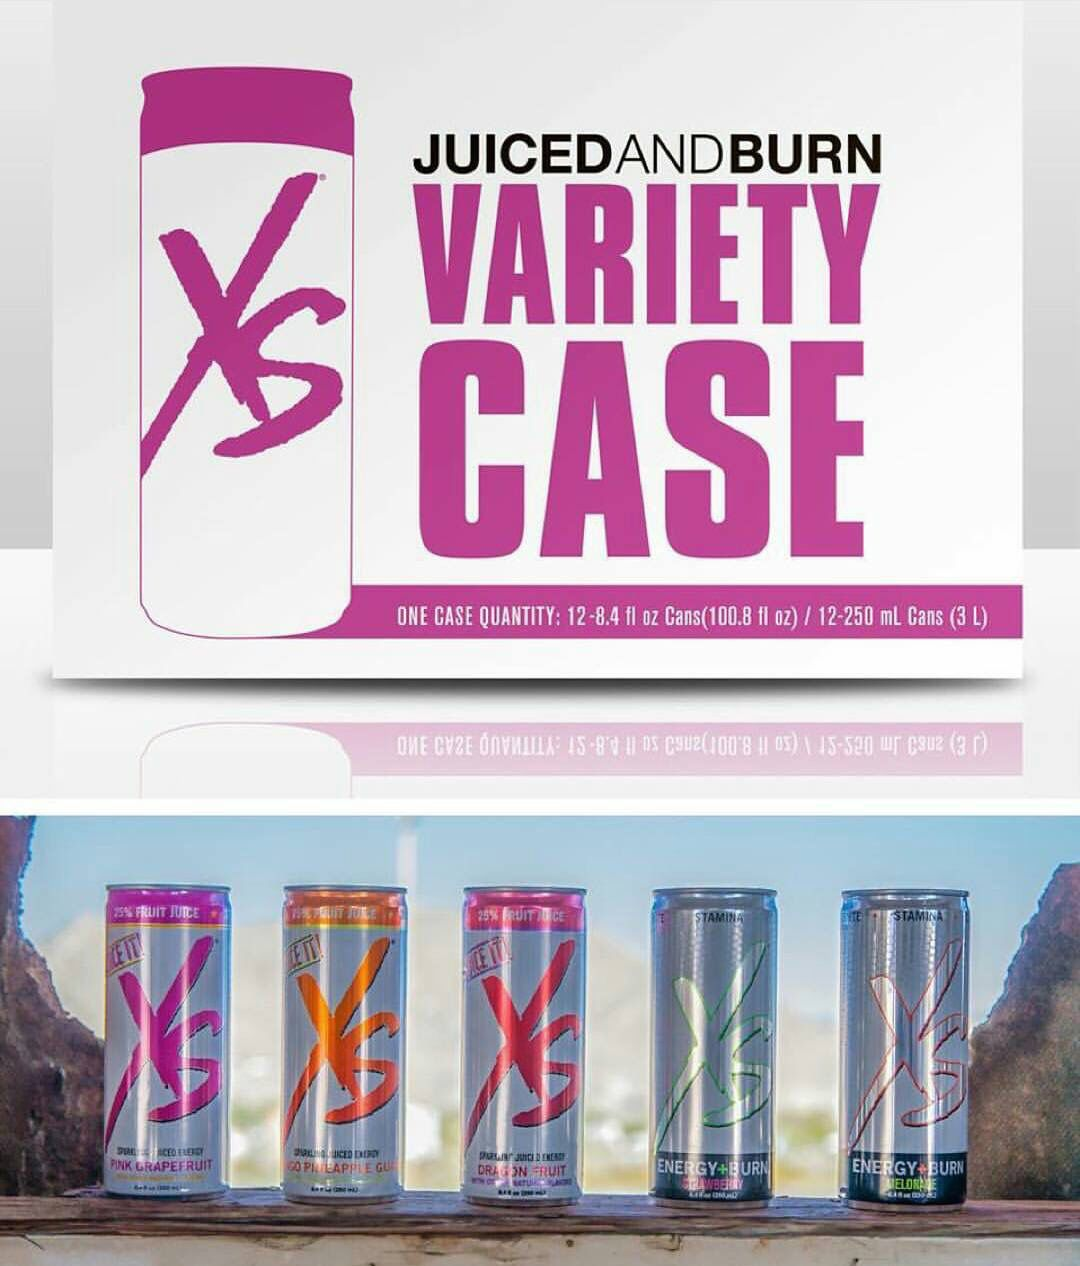 Try our new delicious variety case of XS Energy drinks! Get yours today @AllDreamSuccess